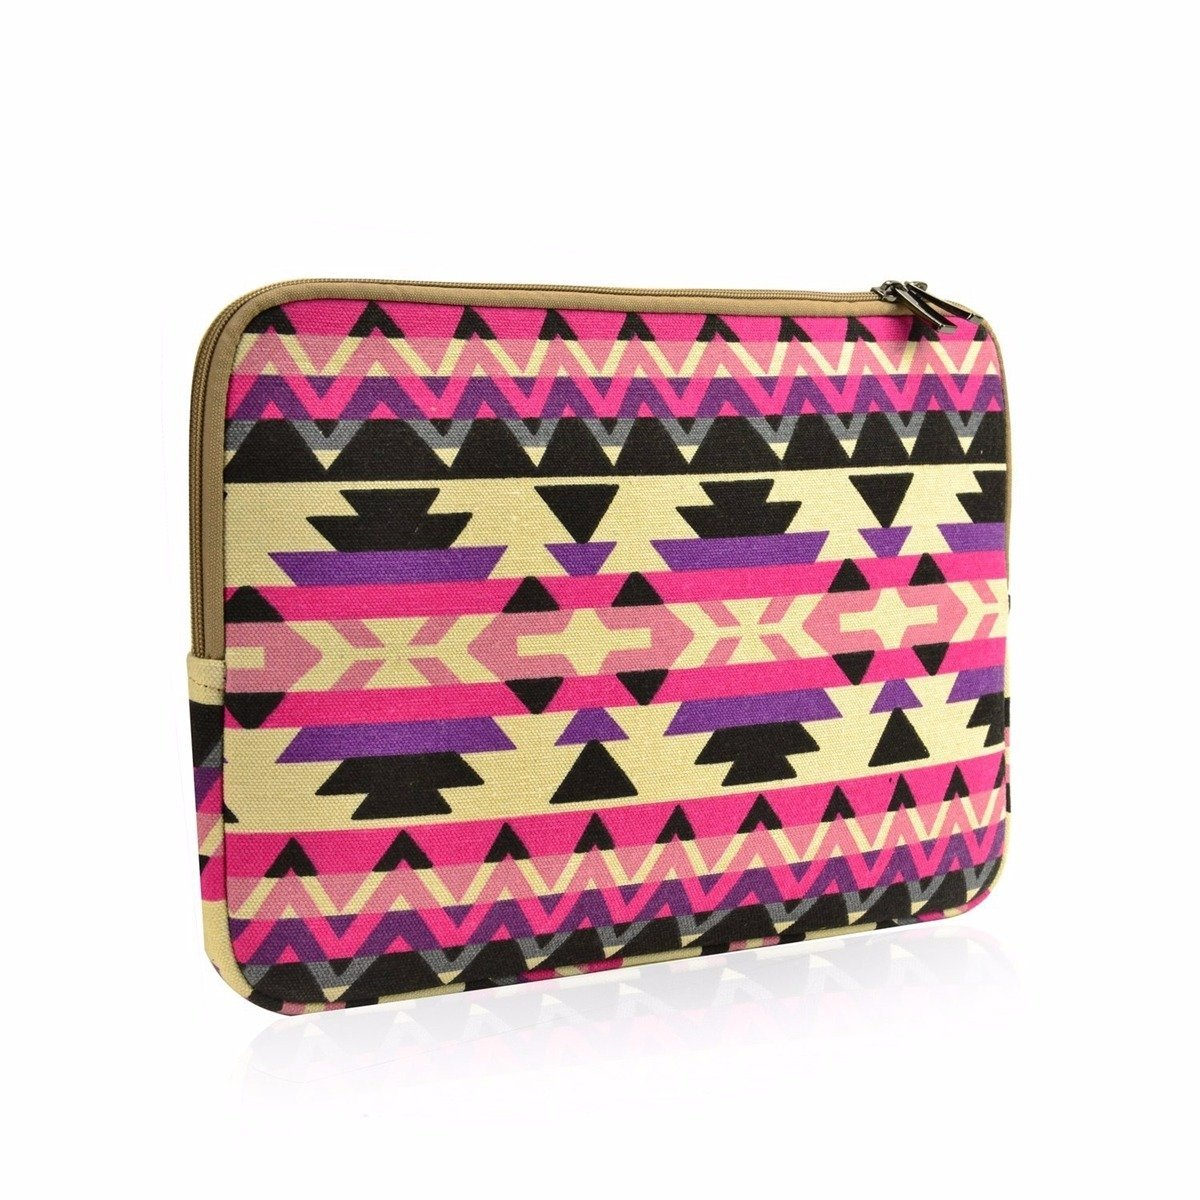 "Unik Case Abstract Pink Bohemian Zipper Laptop Sleeve Bag Case Cover for All 13"" 13-Inch Laptop Notebook / Macbook Pro / Macbook Unibody / Macbook Air / Ultrabook / Chromebook"